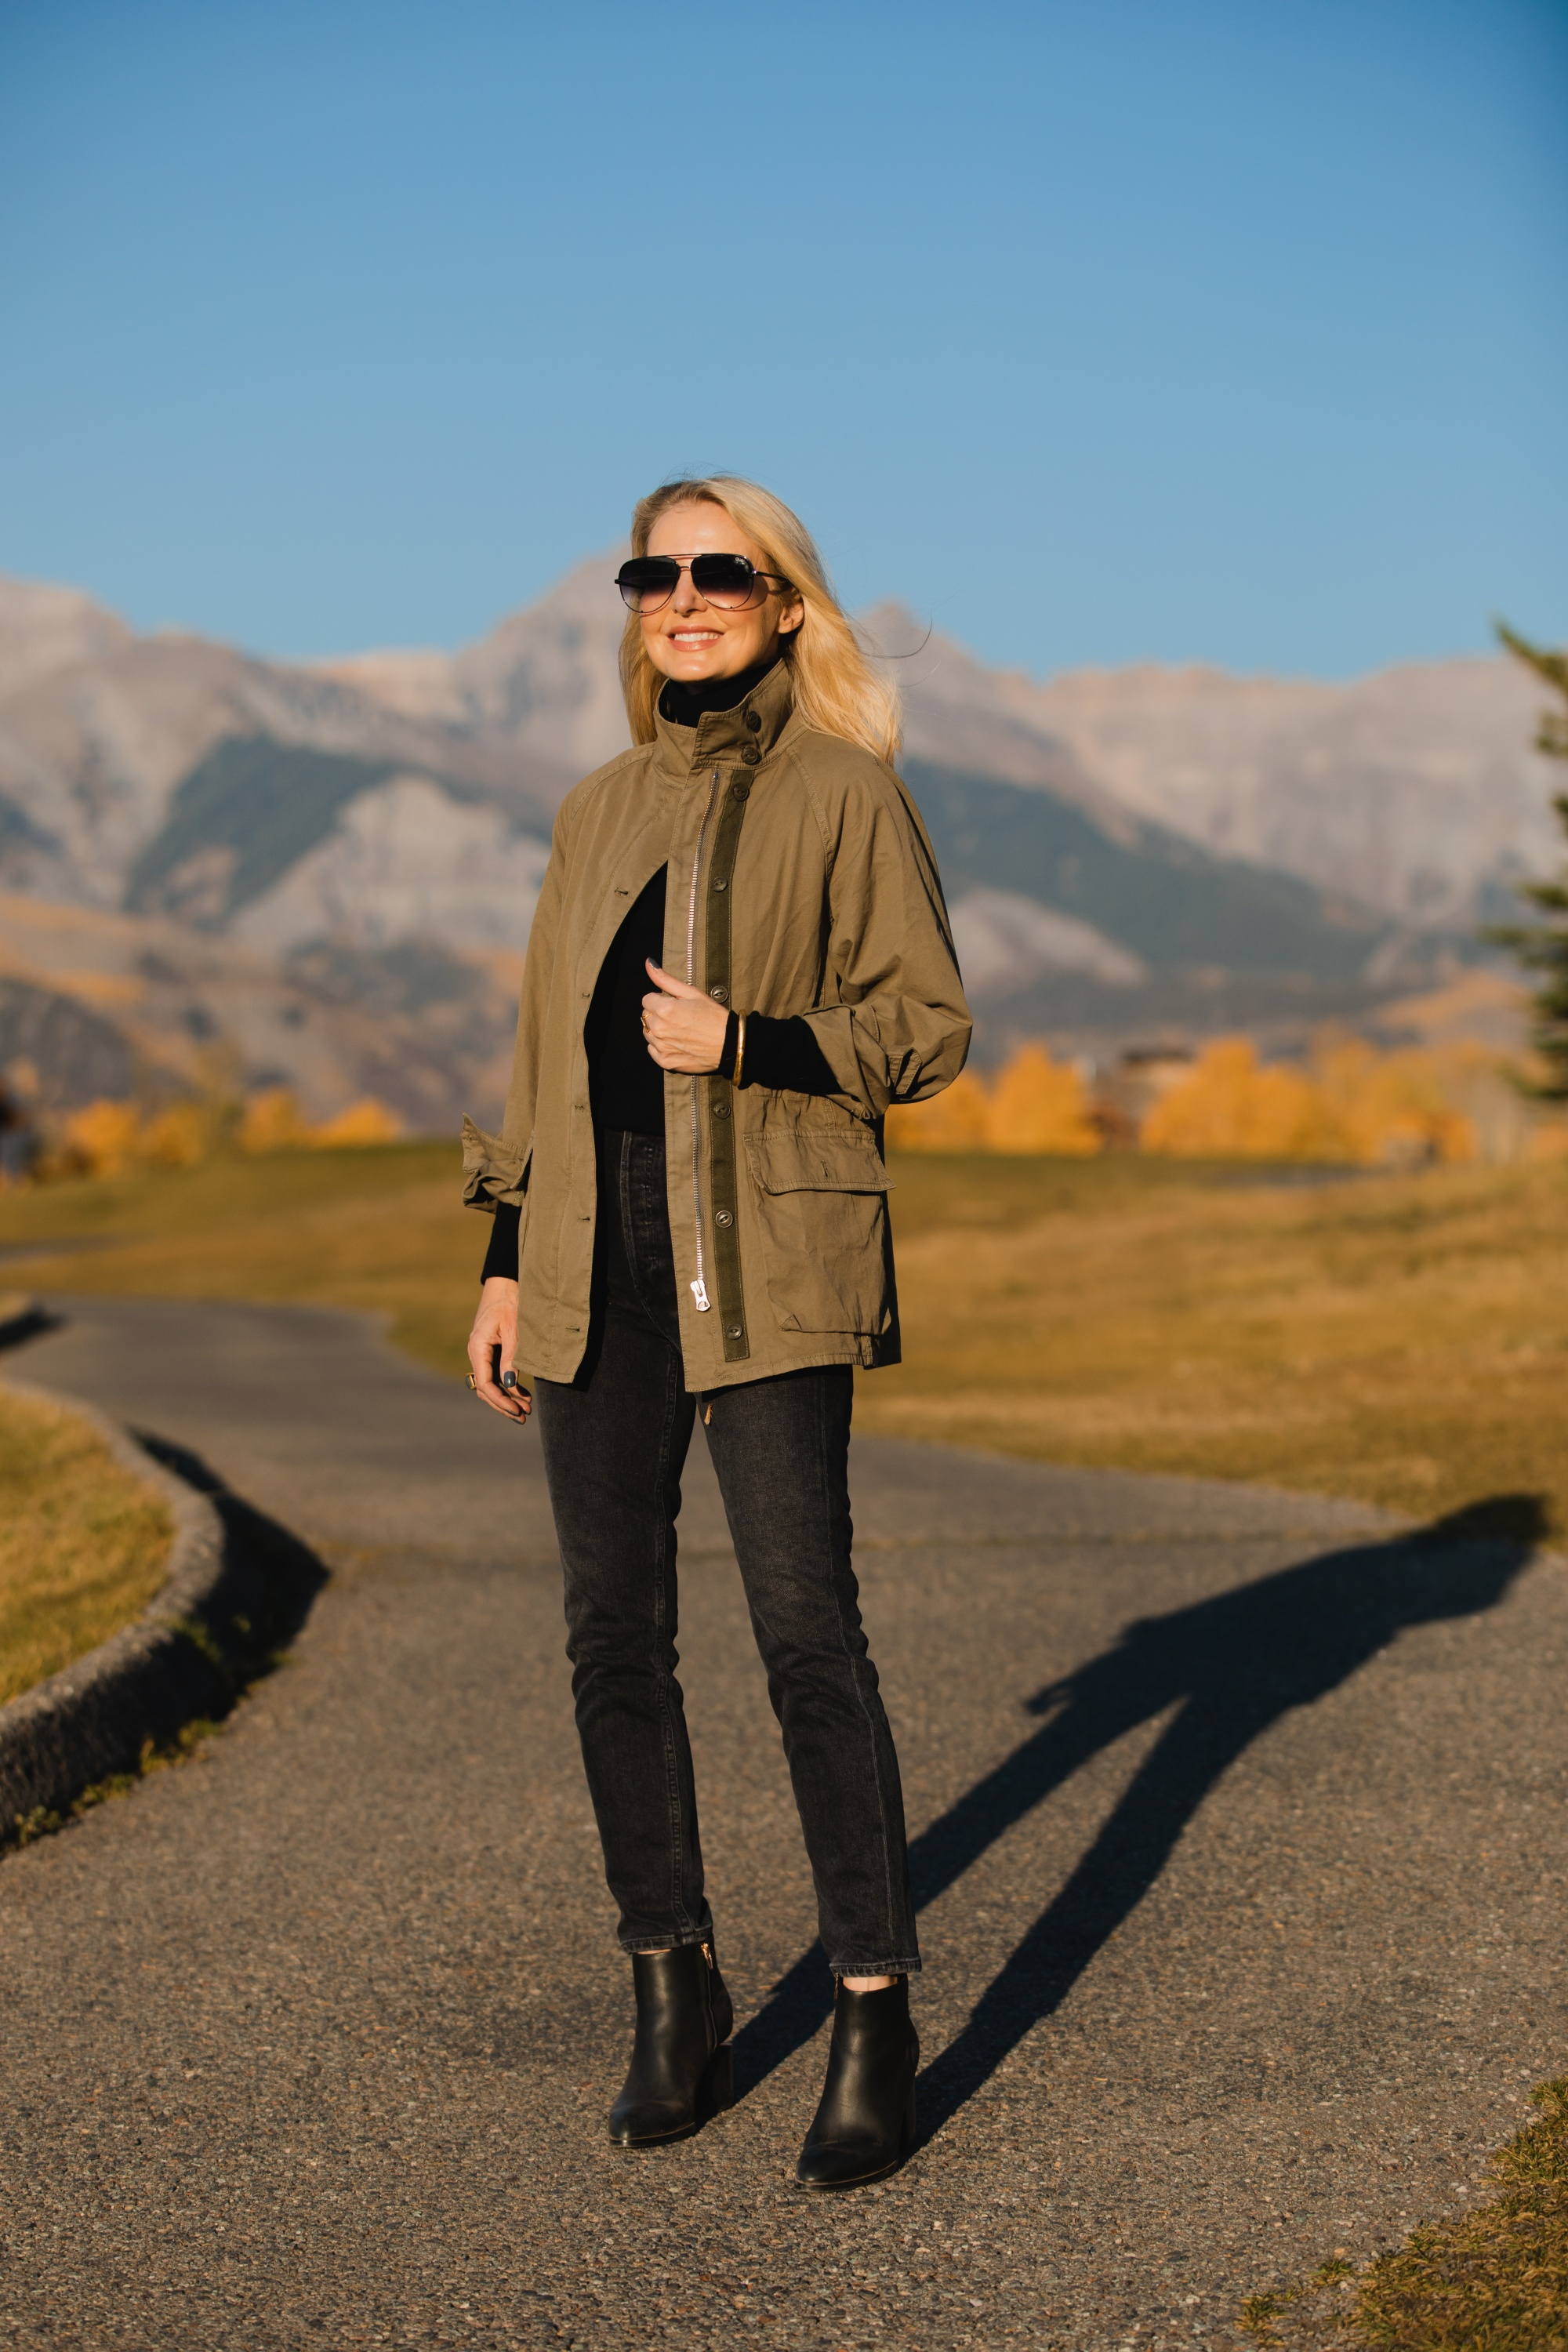 How To Wear A Cargo Jacket, Erin Busbee of Busbee Style wearing a green cargo jacket by rag & bone, black turtleneck puff sleeve cashmere sweater by Aqua, gray wash Nico slim fit jeans by Agolde, QUAY sunglasses, and Alexander Wang cutout booties in Telluride, Colorado